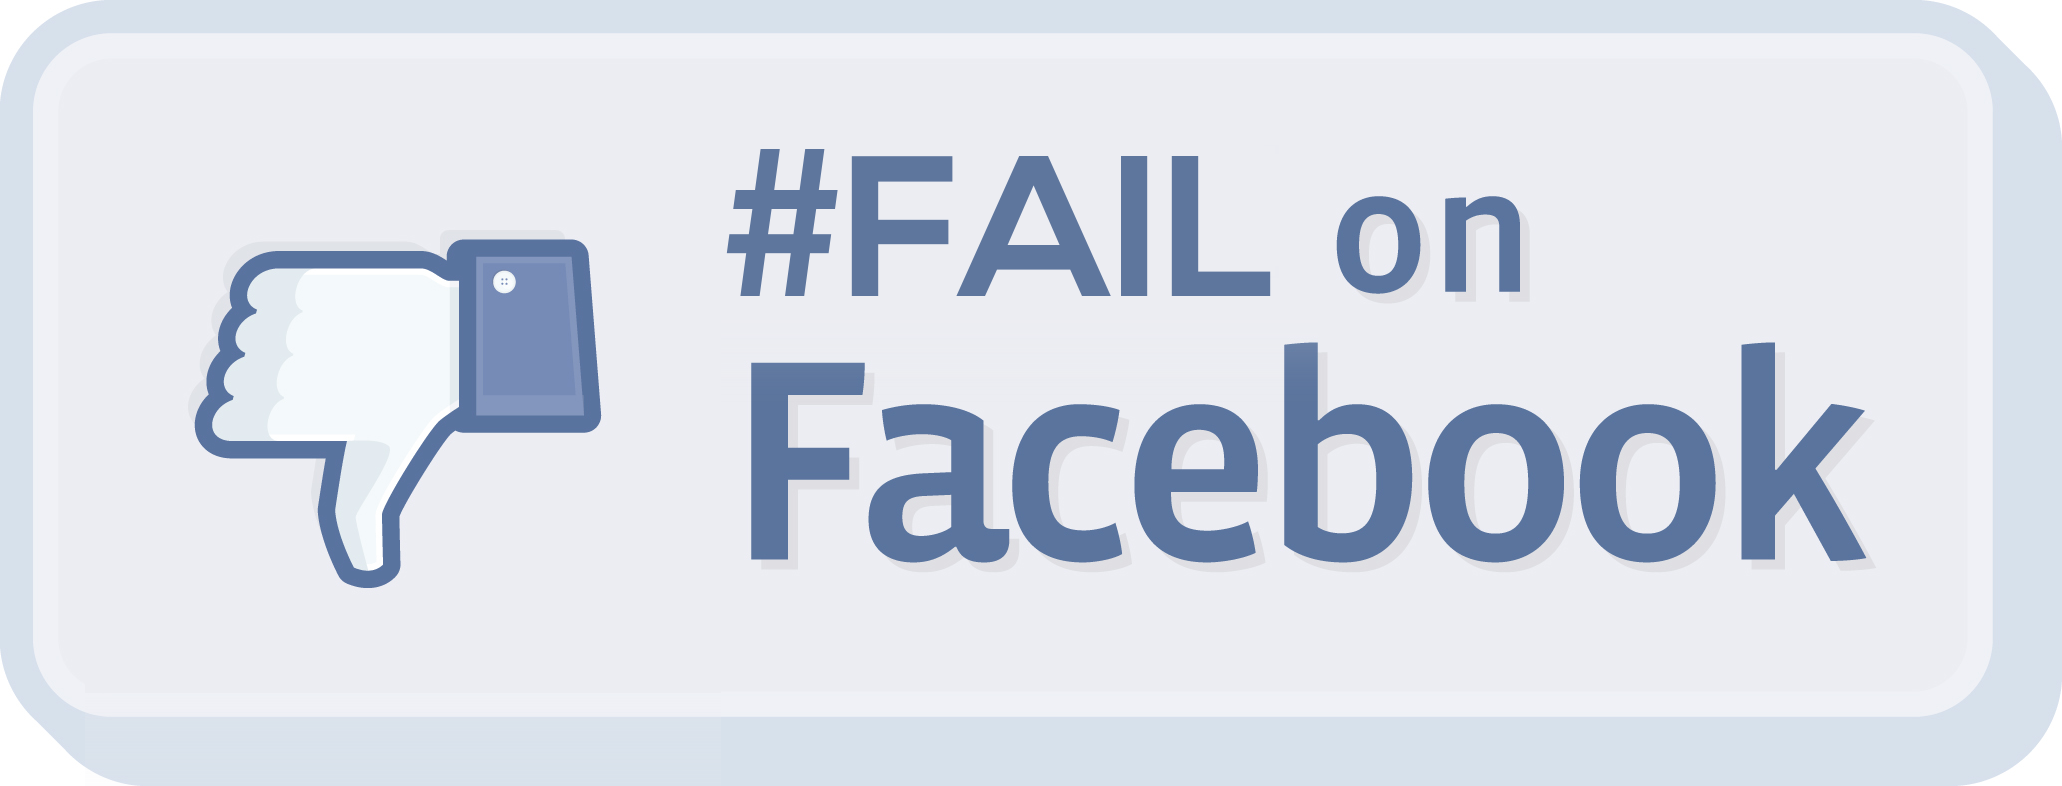 Why Facebook's Strategy Will Fail